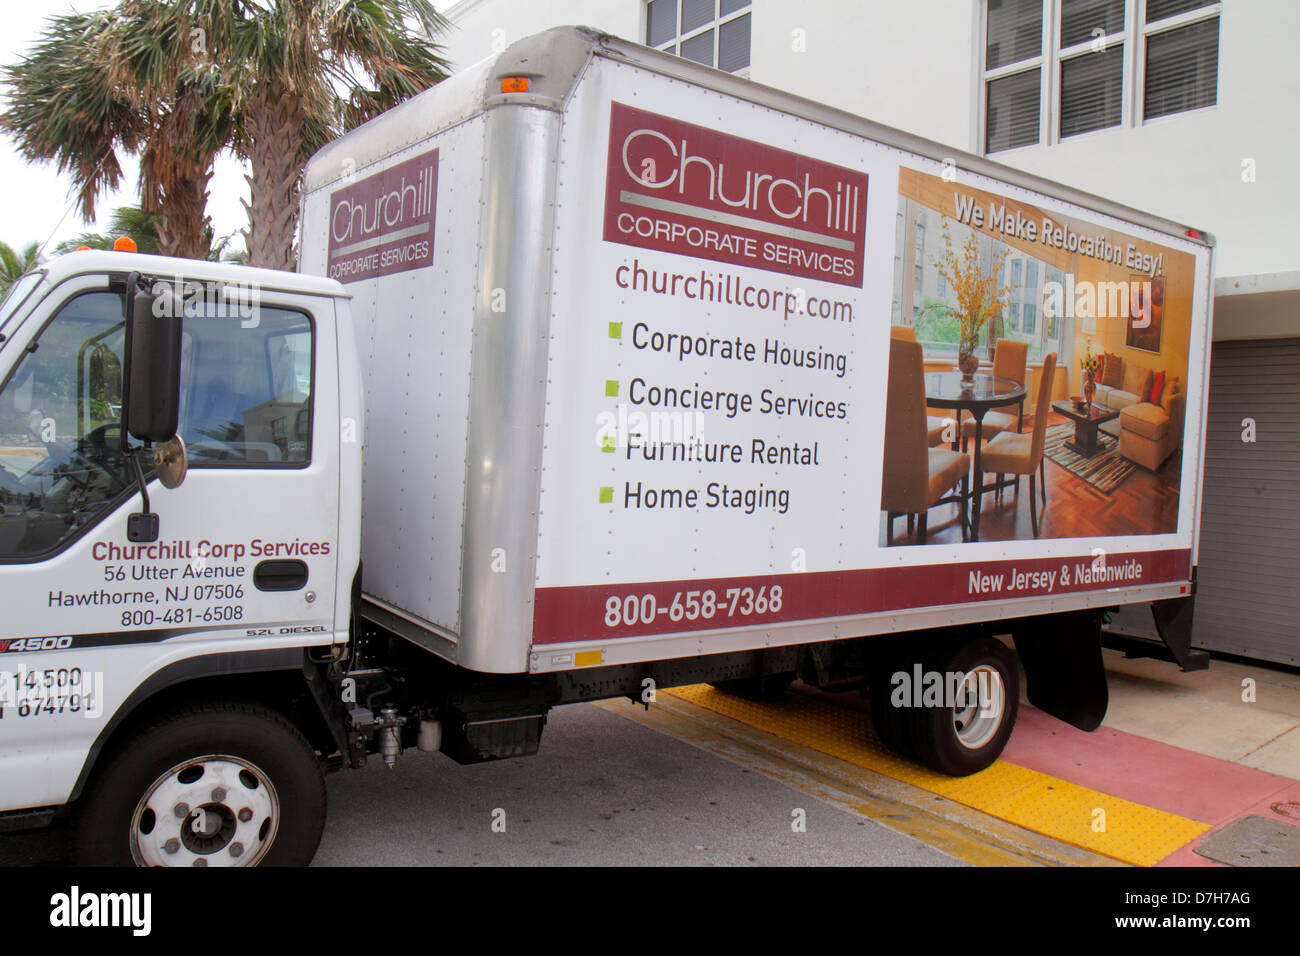 Miami Beach Florida truck lorry corporate services advertising business - Stock Image